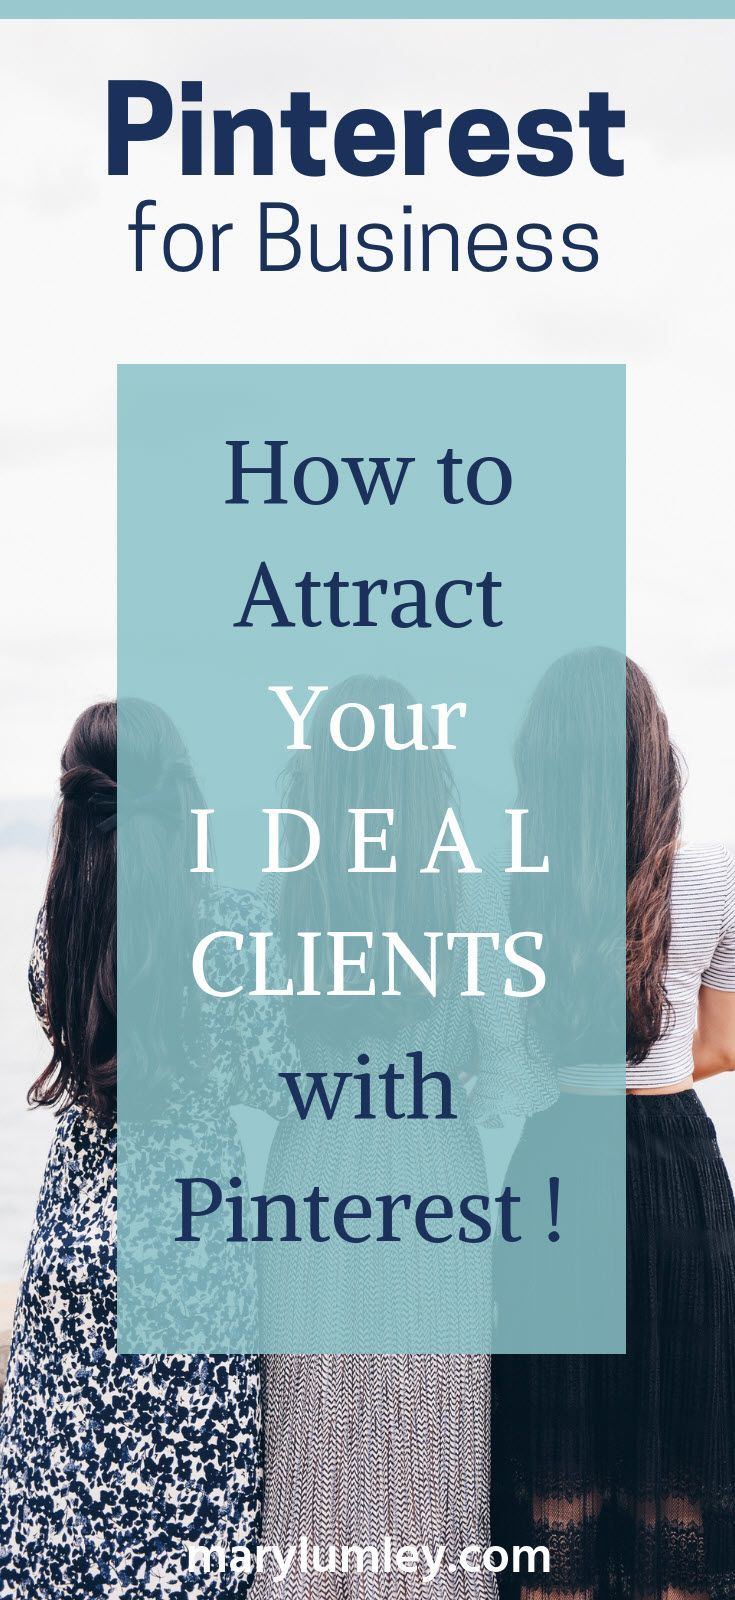 ATTRACT YOUR IDEAL CLIENT – HOW TO GROW YOUR TRIBE ON PINTEREST! – As a business owner you want to attract pinners that are interested in your product or service. So how do you go about attracting the right kind of followers? Read on to find out!